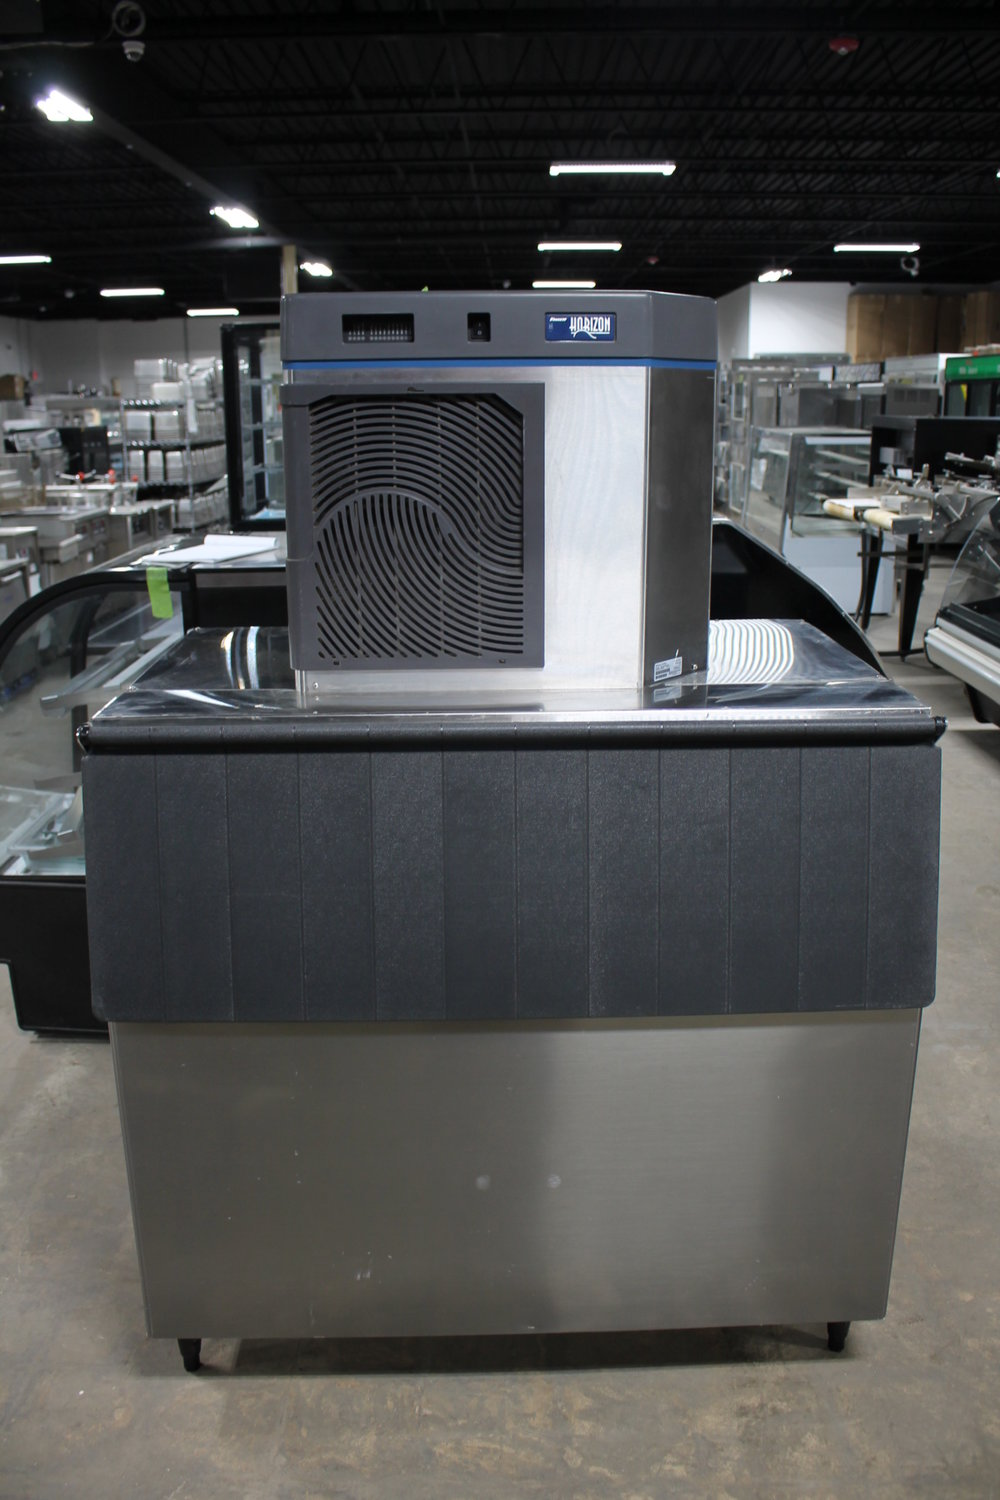 FOLLETT HORIZON-HCC1000 W/Optional Hoshizaki Ice Storage Bin